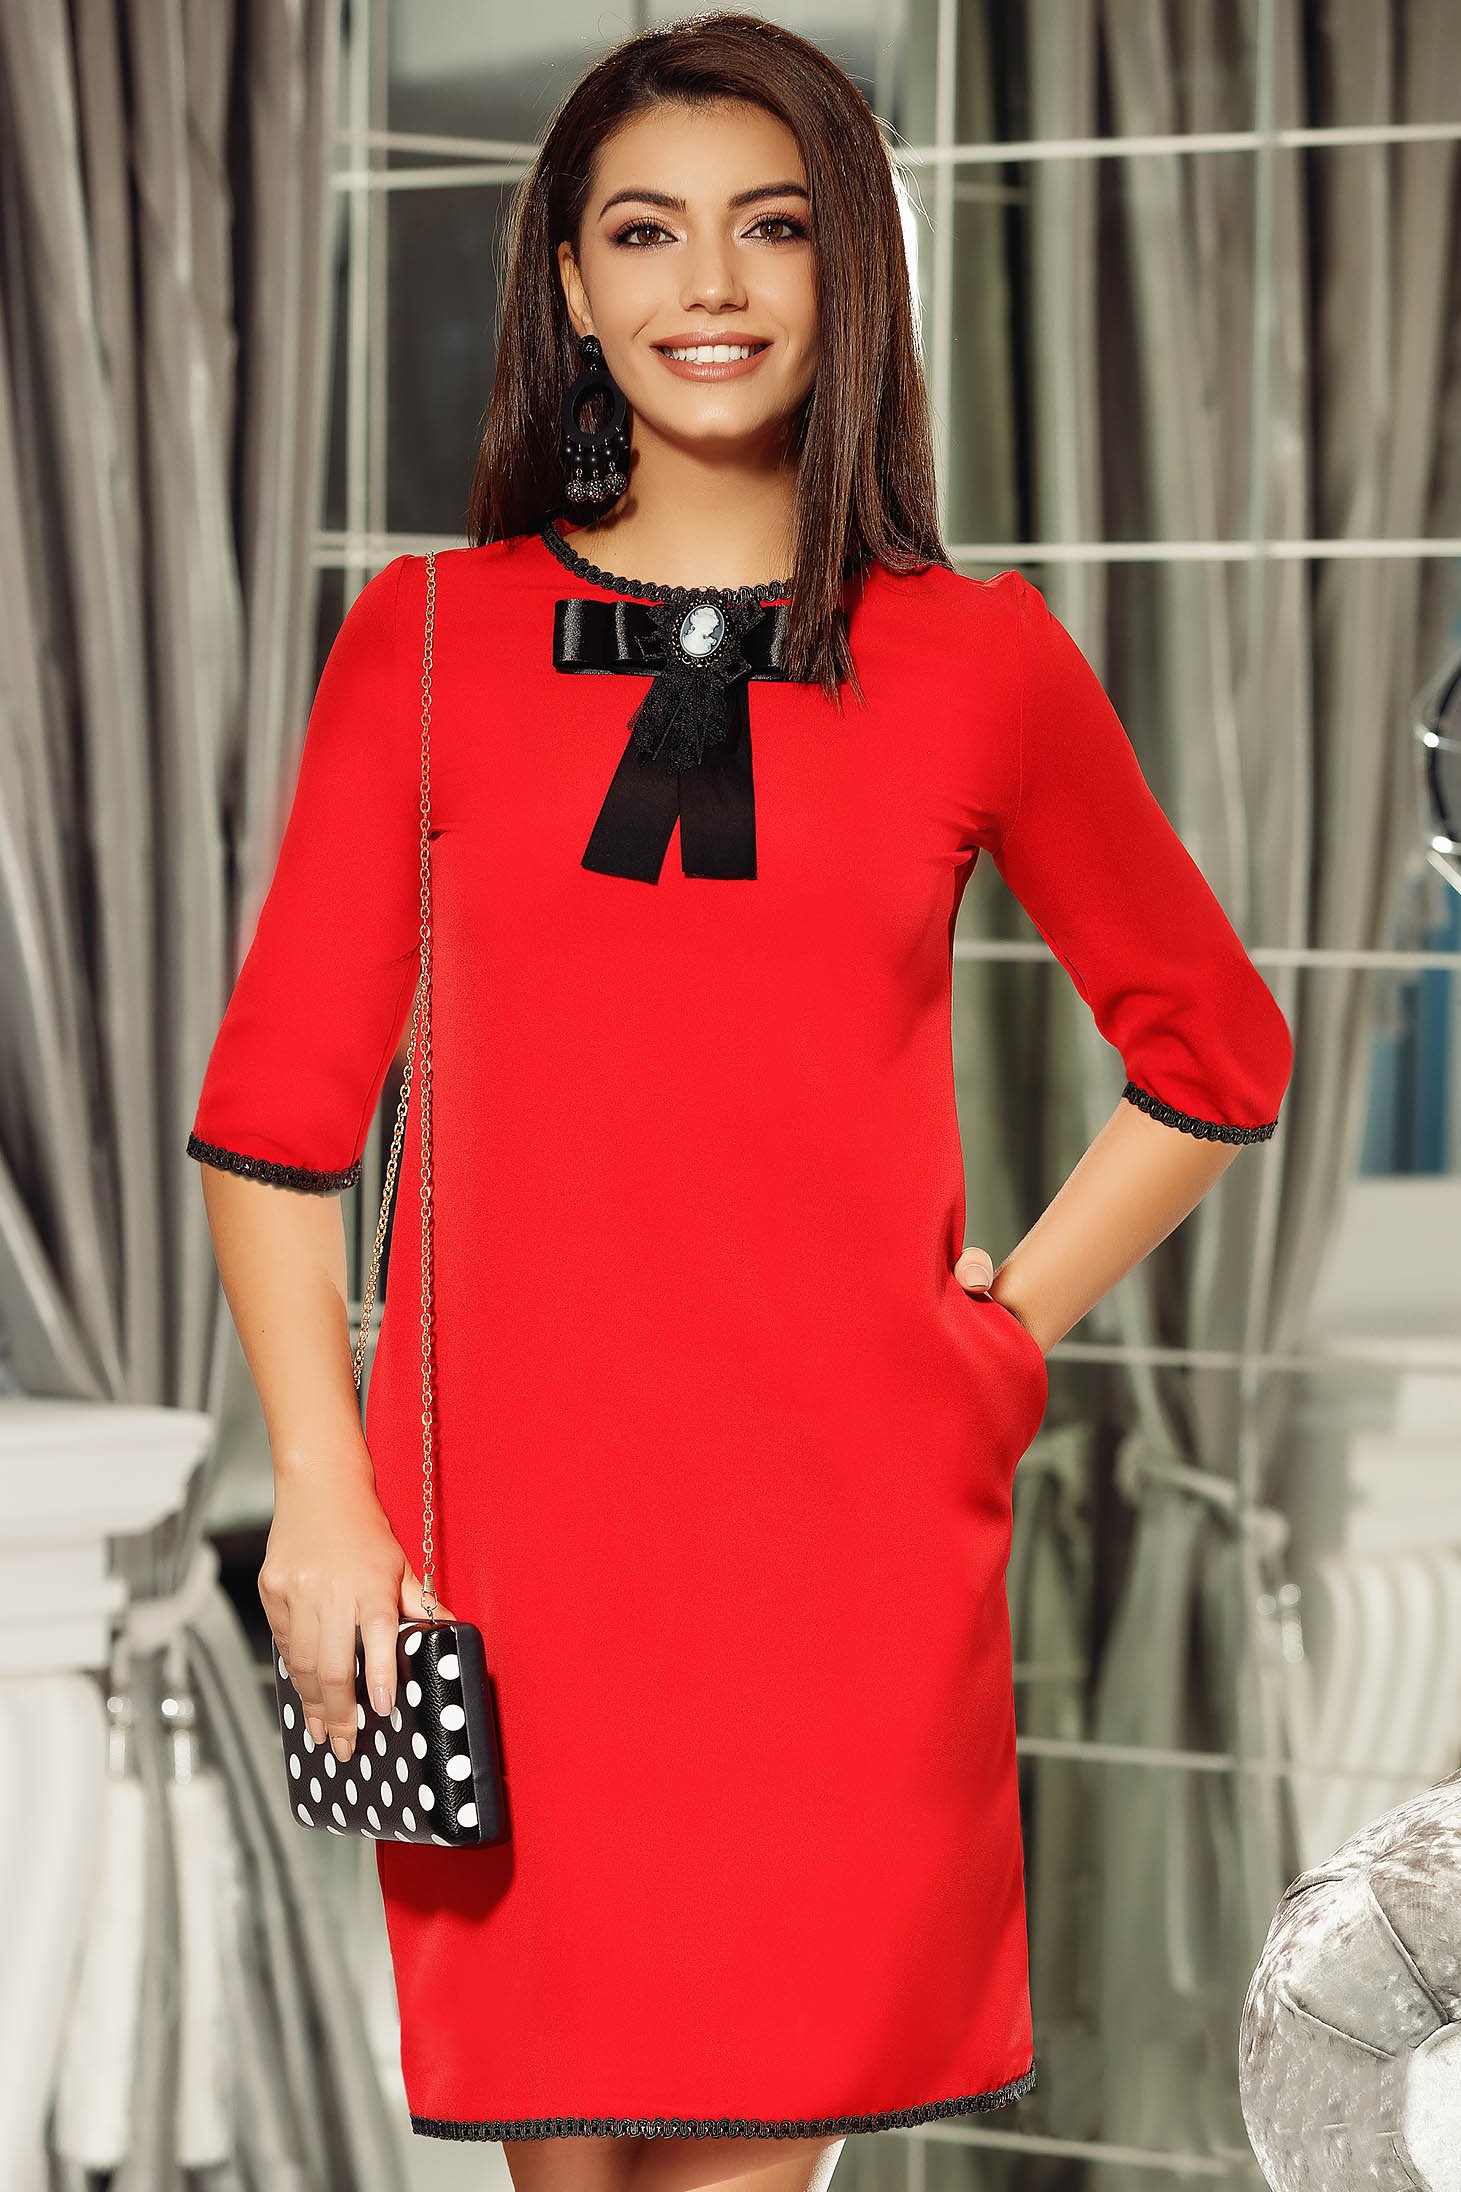 Fofy red dress elegant a-line bow accessory